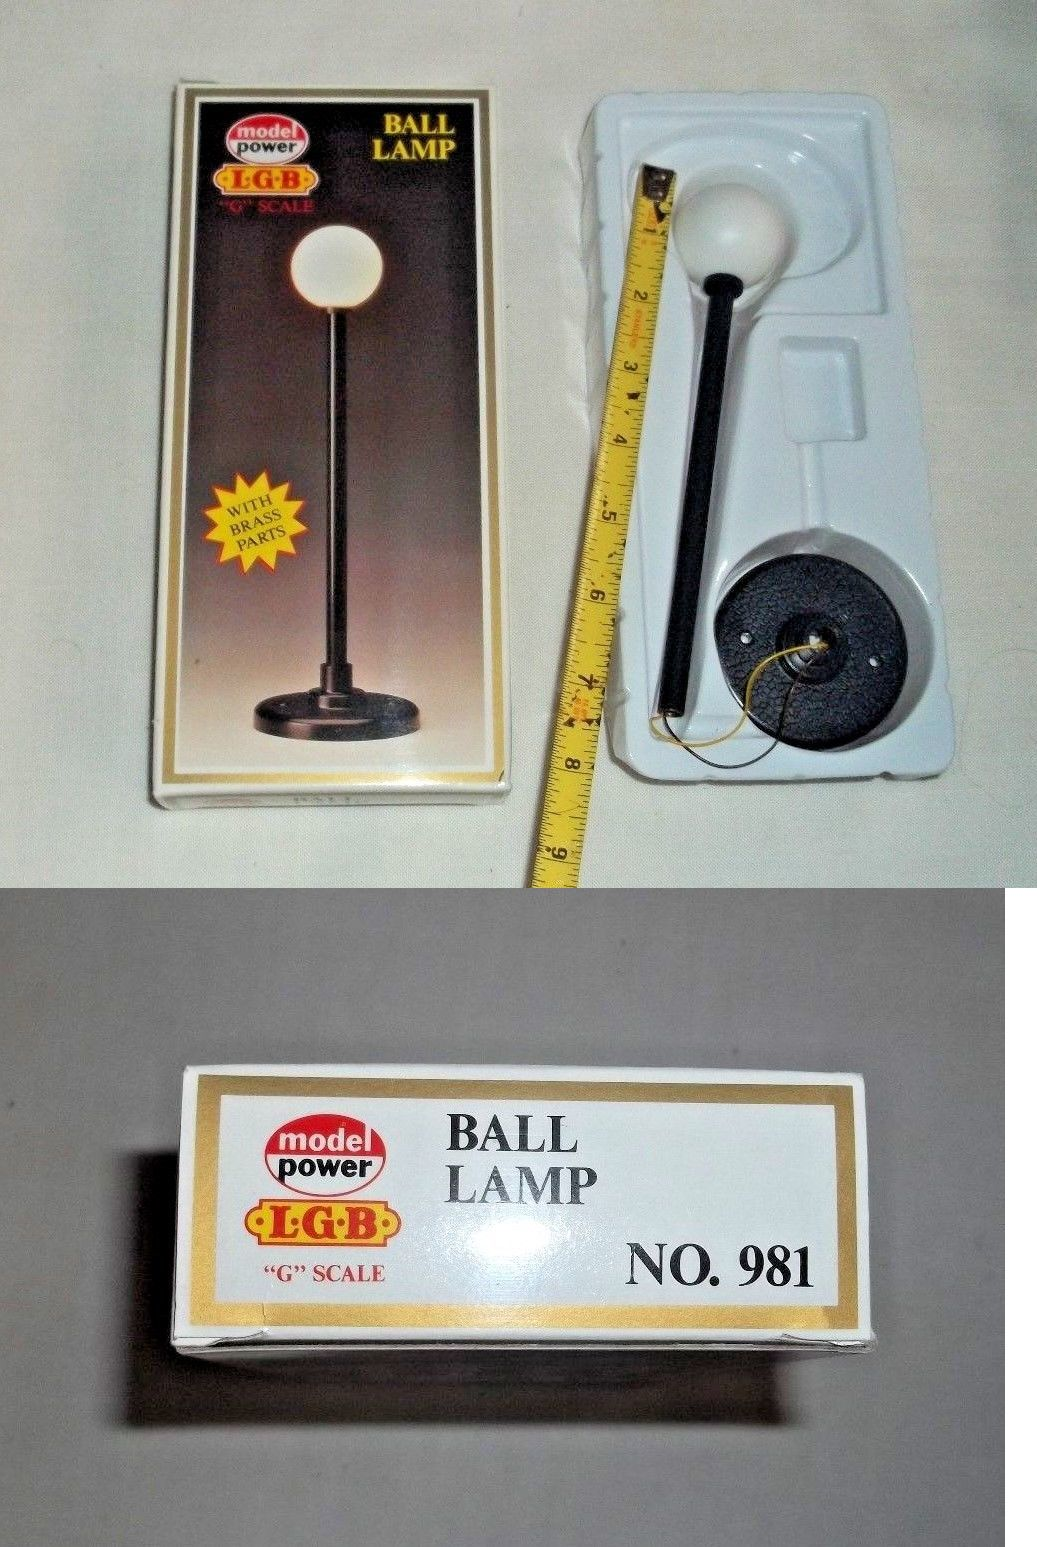 Lamps And Lights 80984 G Scale Working Street Light W Ball Lamp